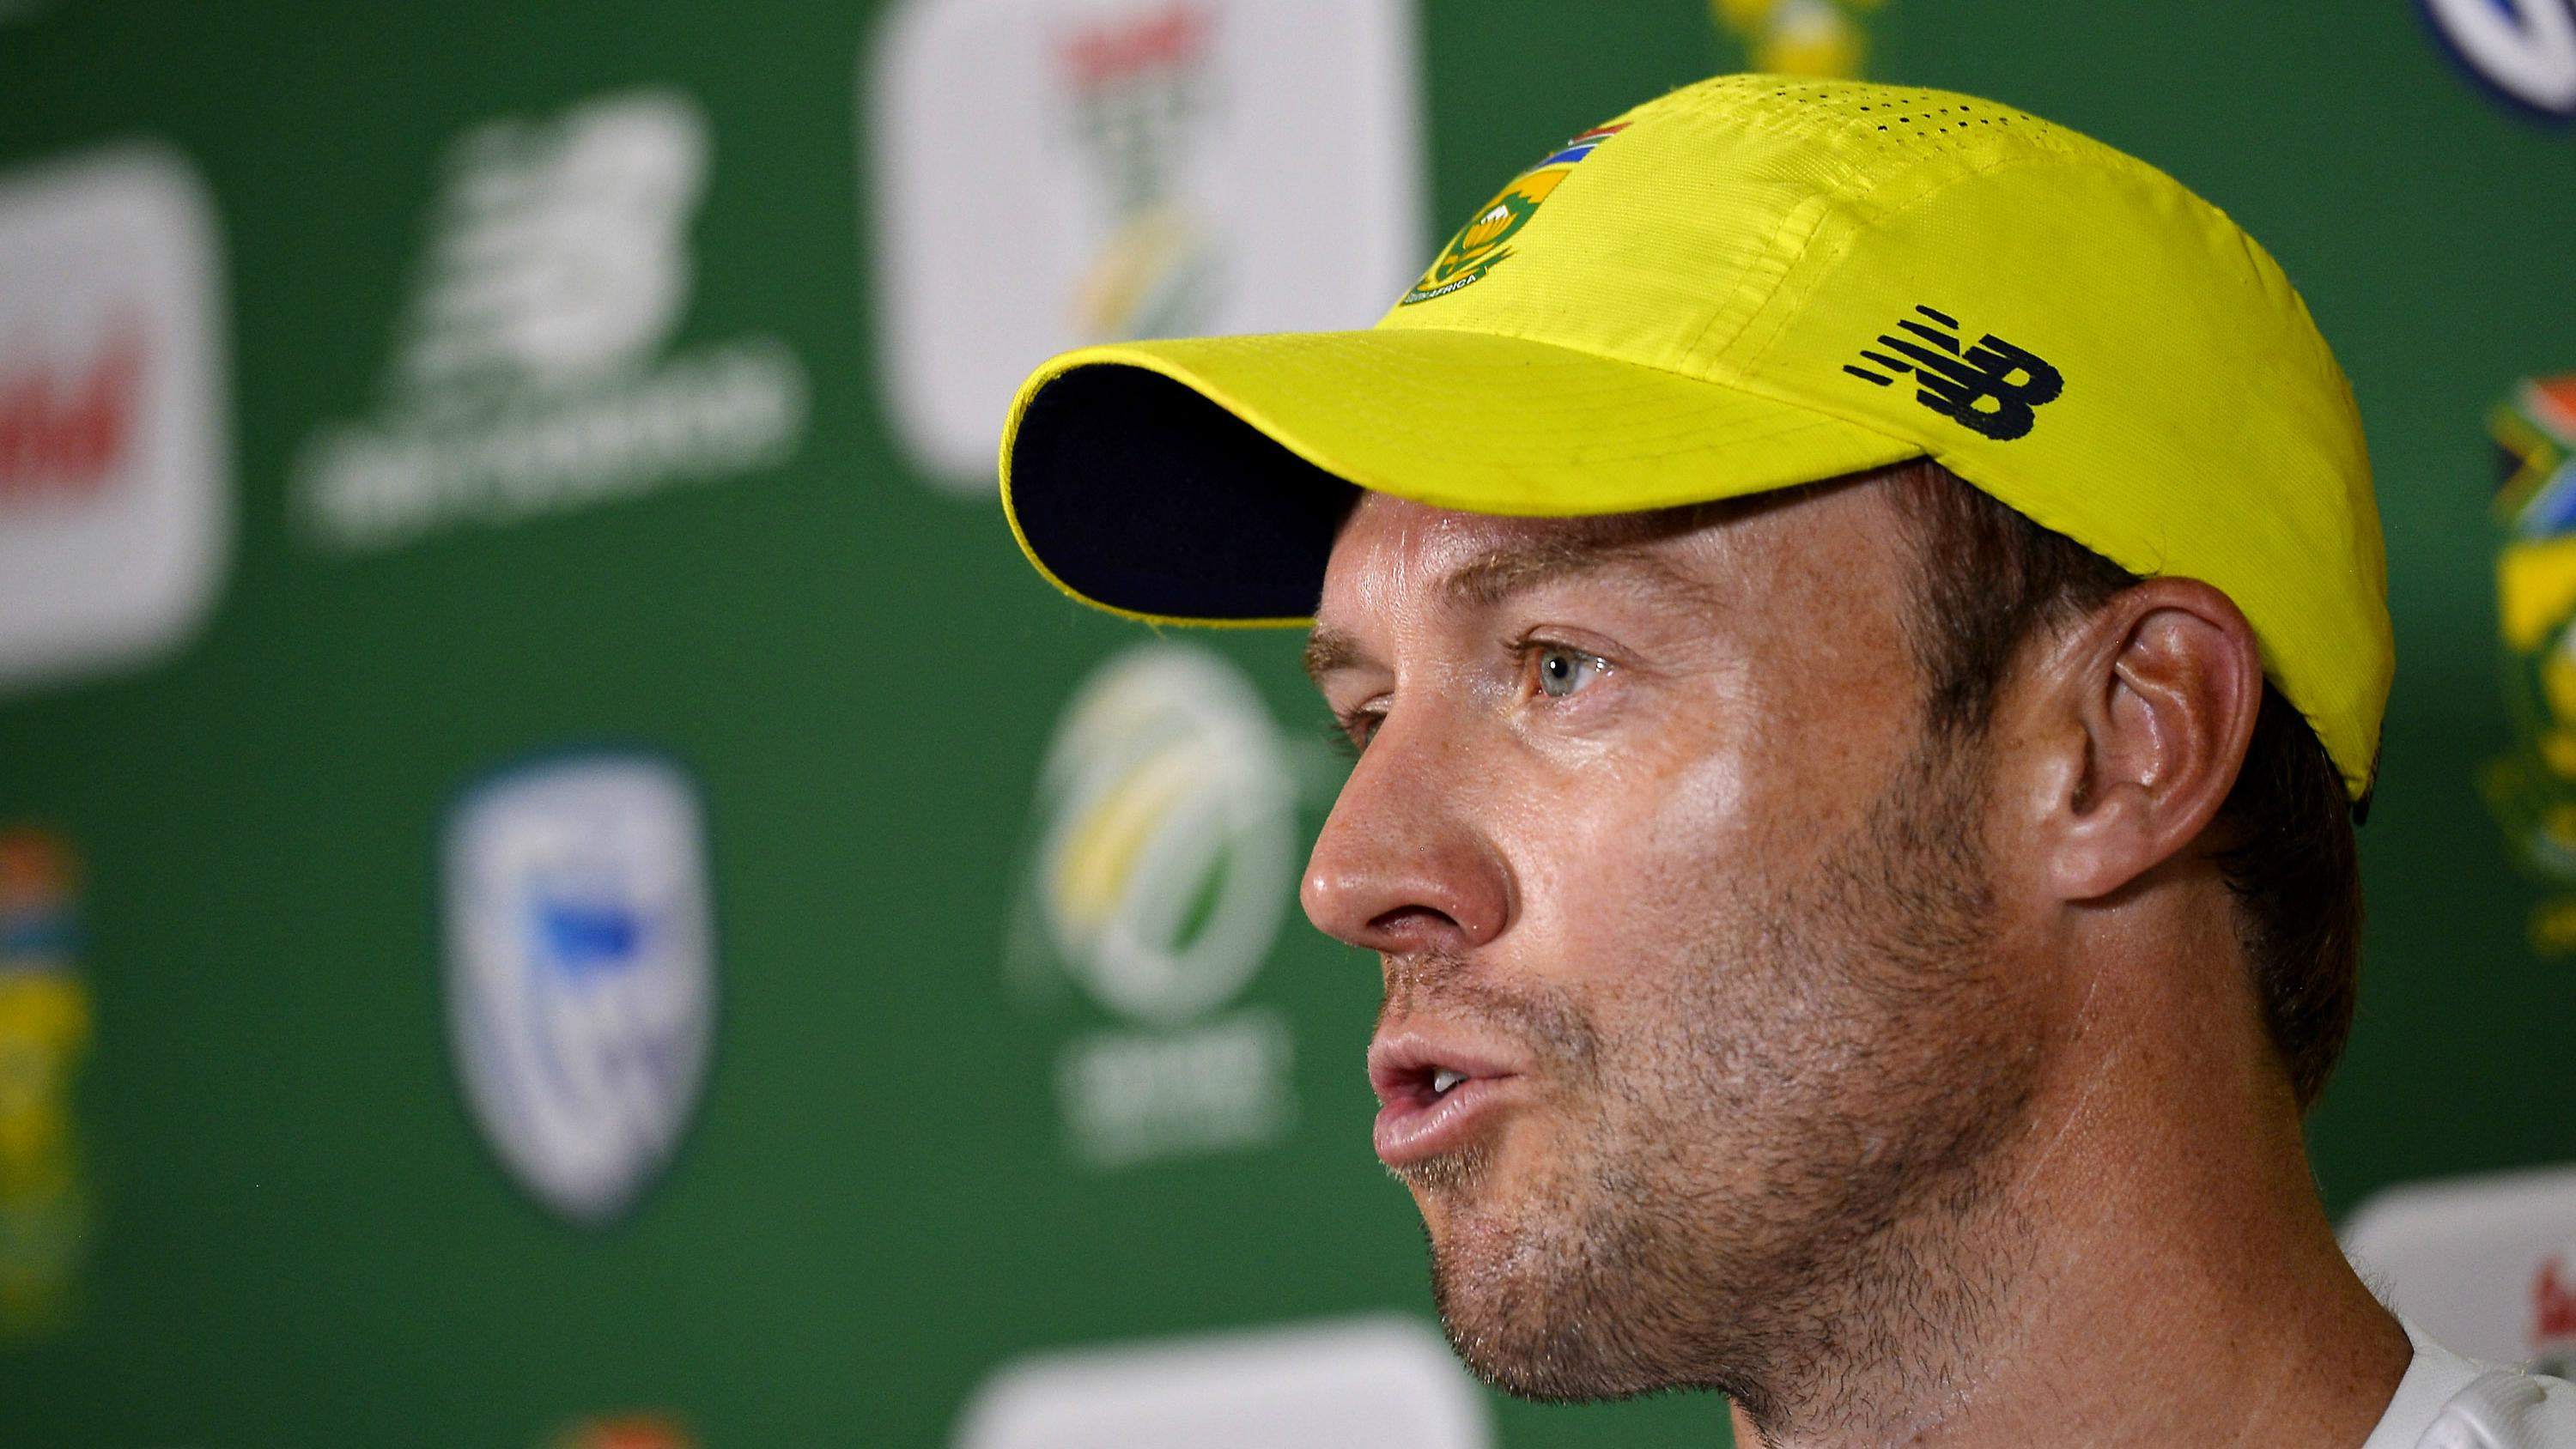 Cricket players and fans react to shock retirement of AB de Villiers